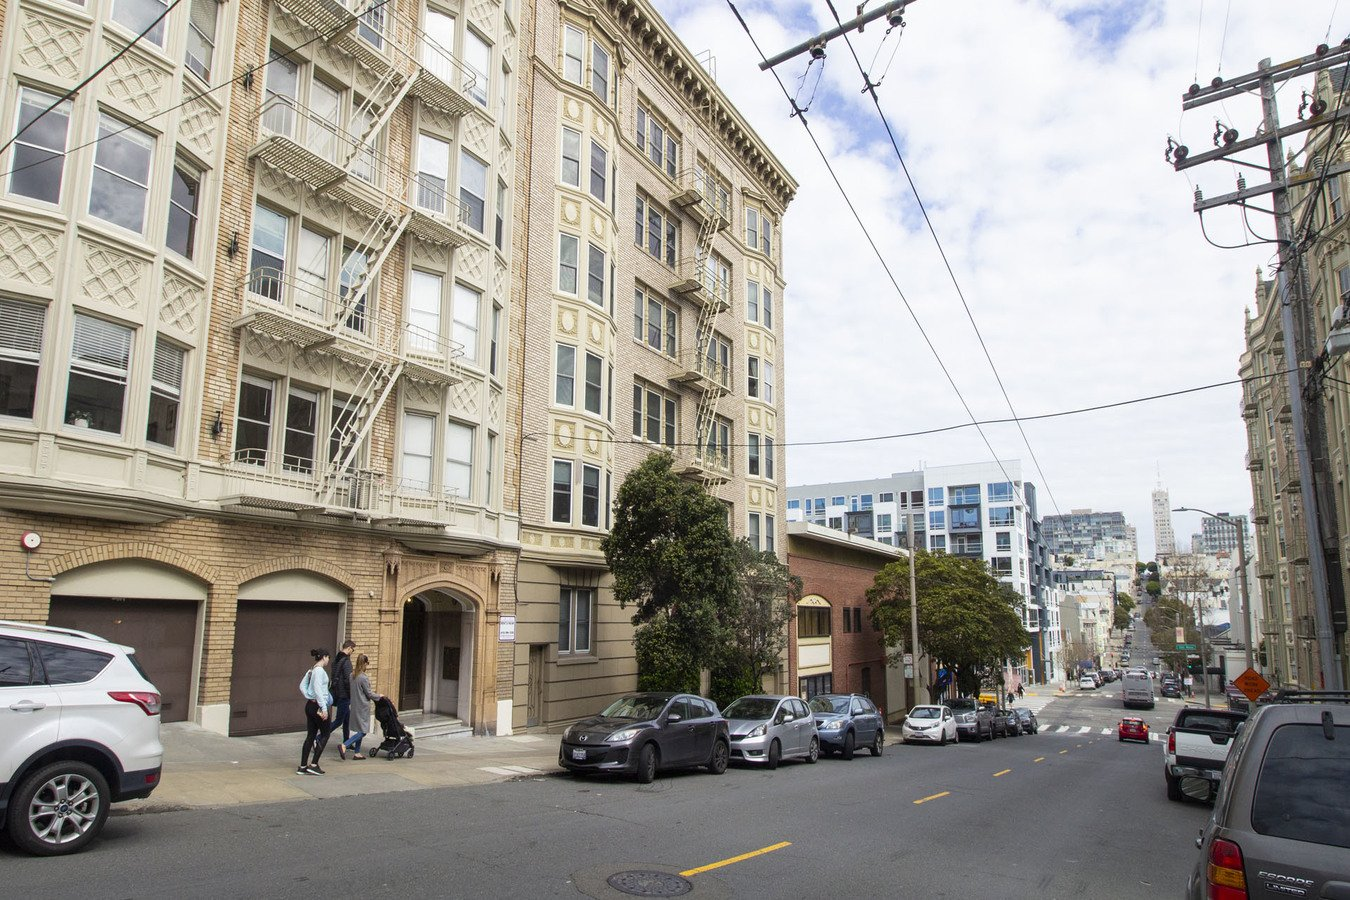 2 Bedrooms 1 Bathroom Apartment for rent at 1840 Clay Apartments in San Francisco, CA